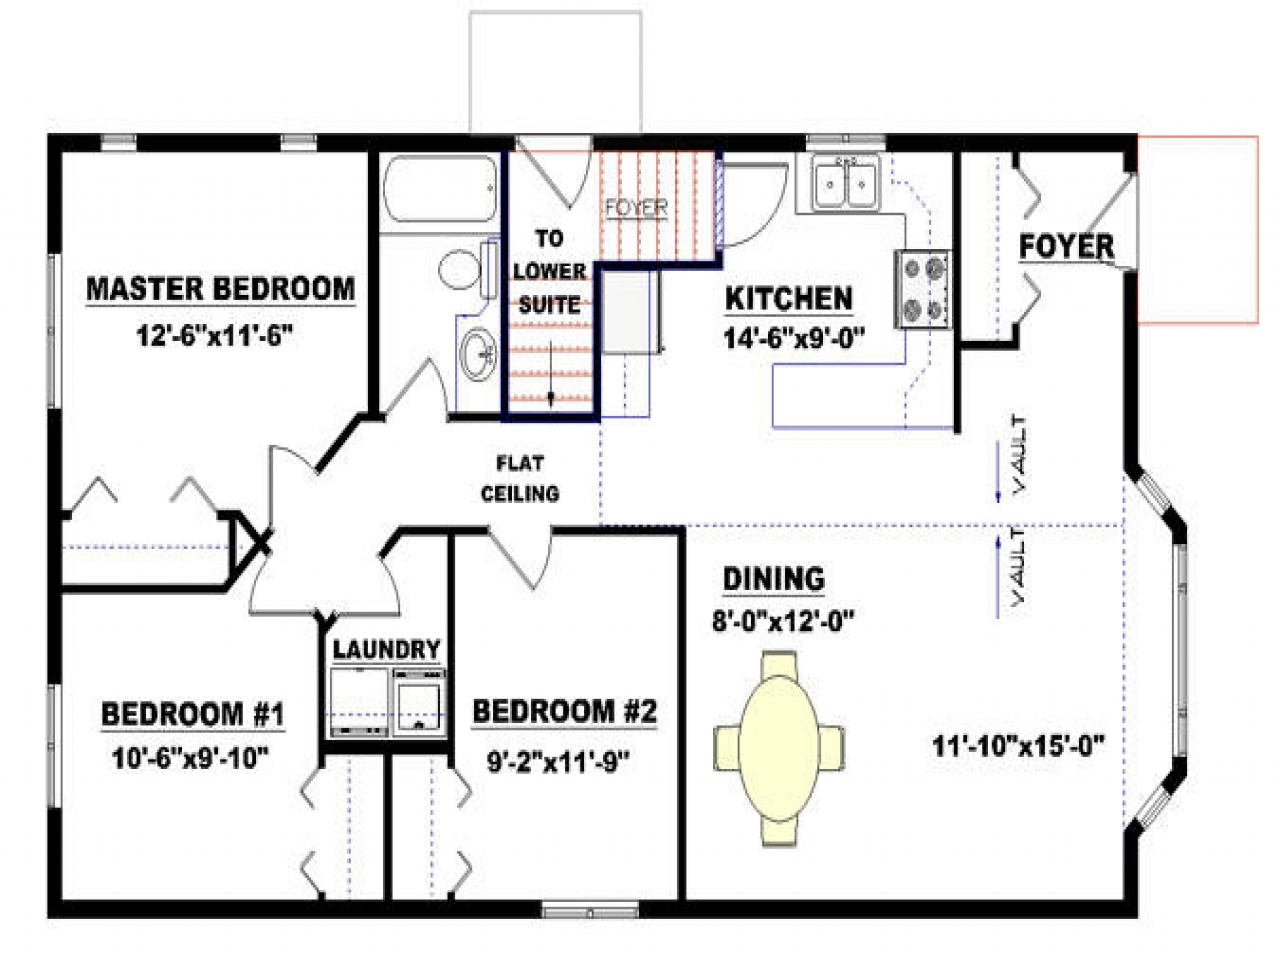 House plans free downloads free house plans and designs house blueprints download House designs and floor plans software